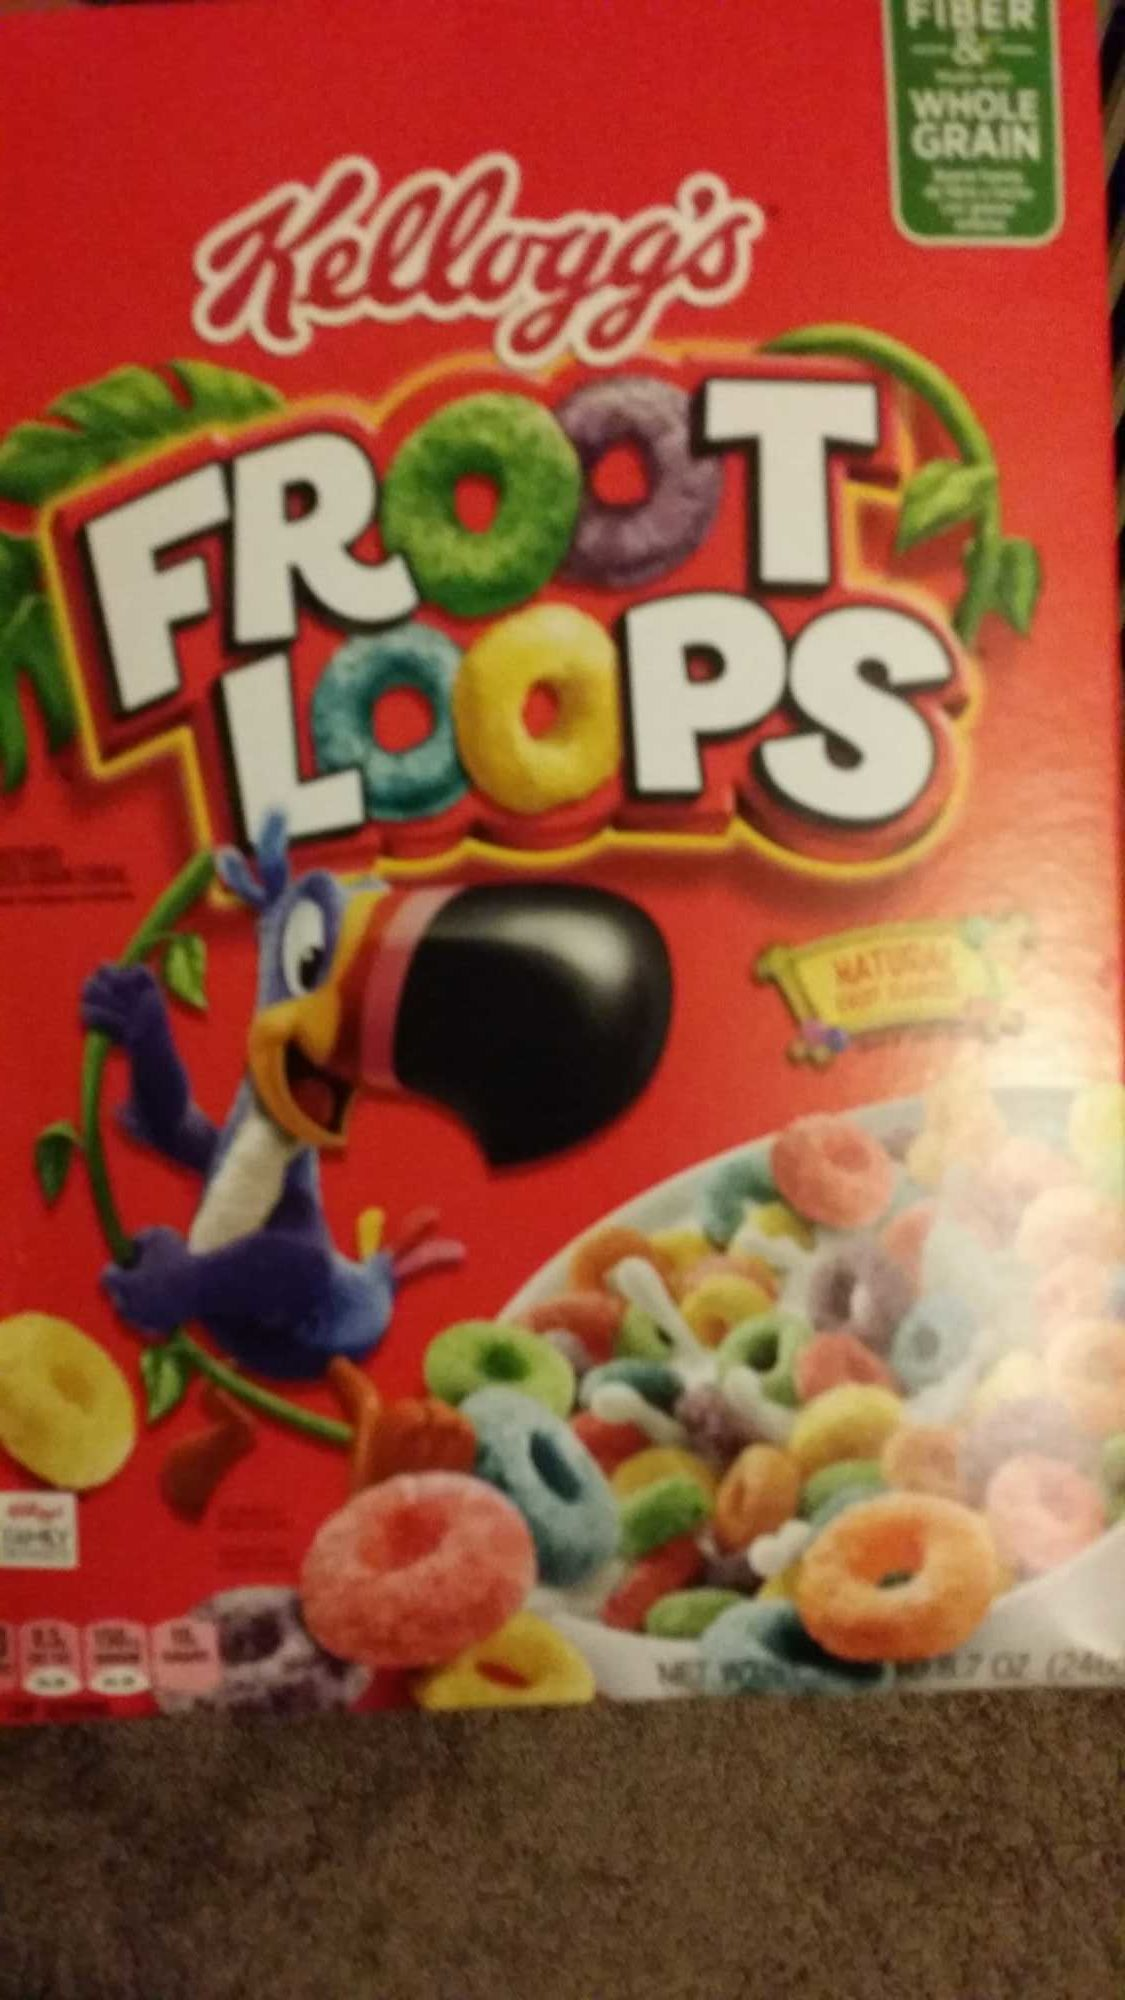 Kellogg's Froot Loops Cereal - Produit